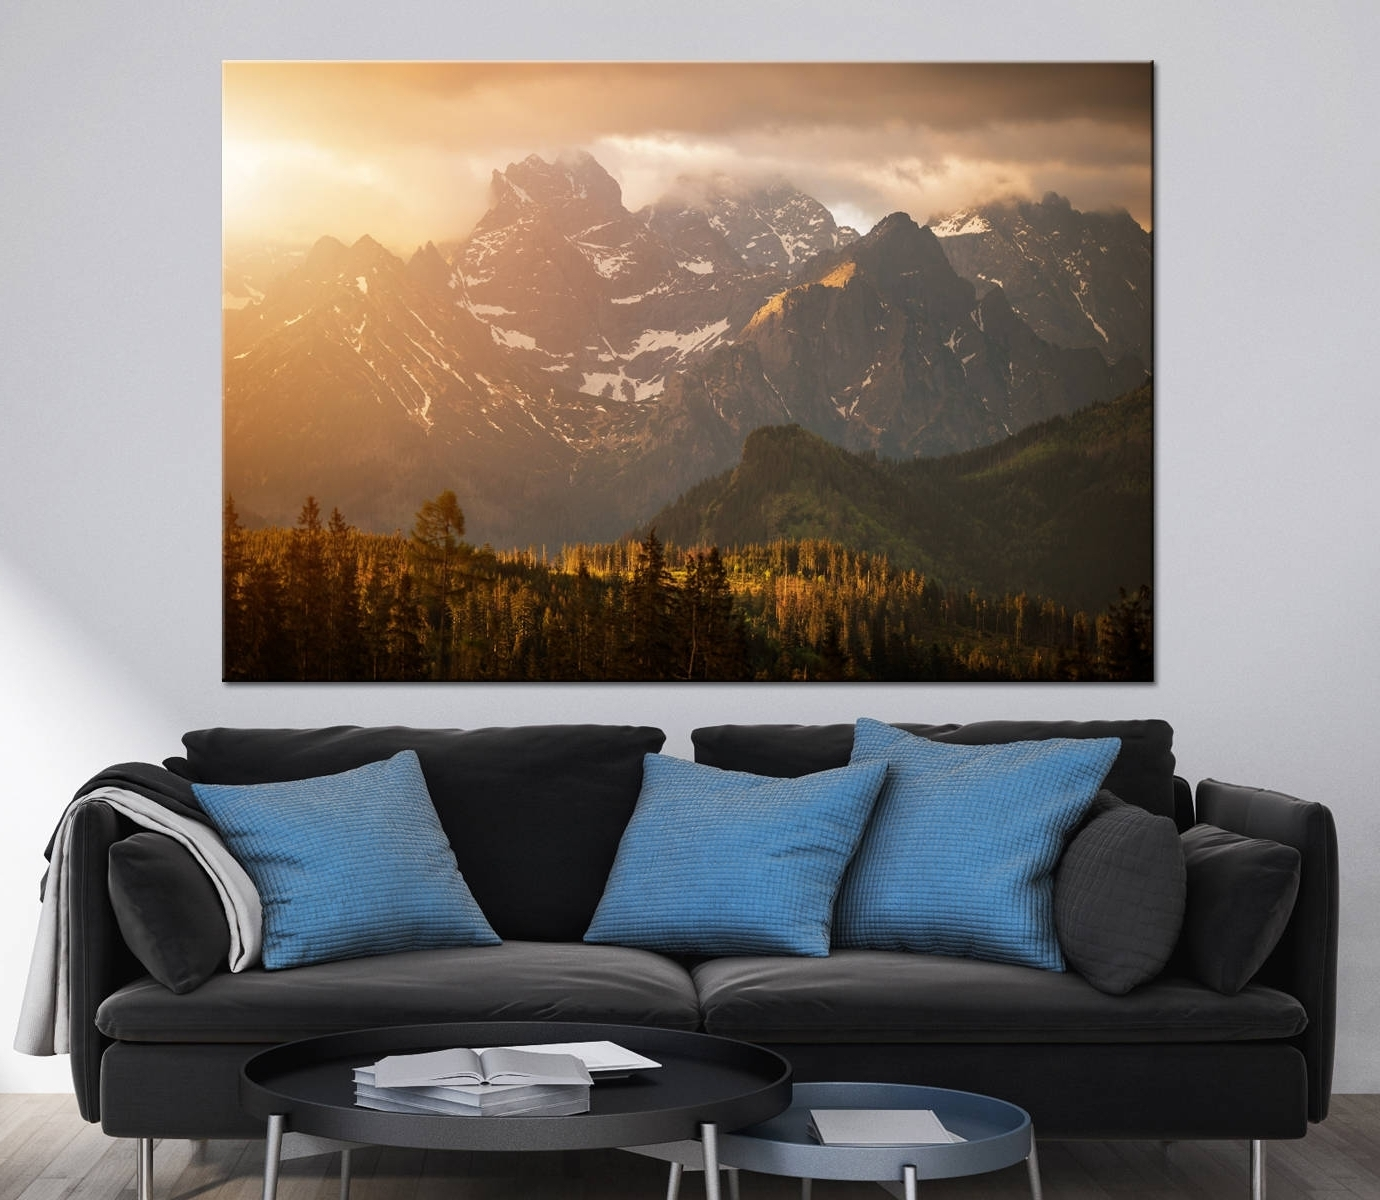 New Canvas Wall Art Nature (View 2 of 15)